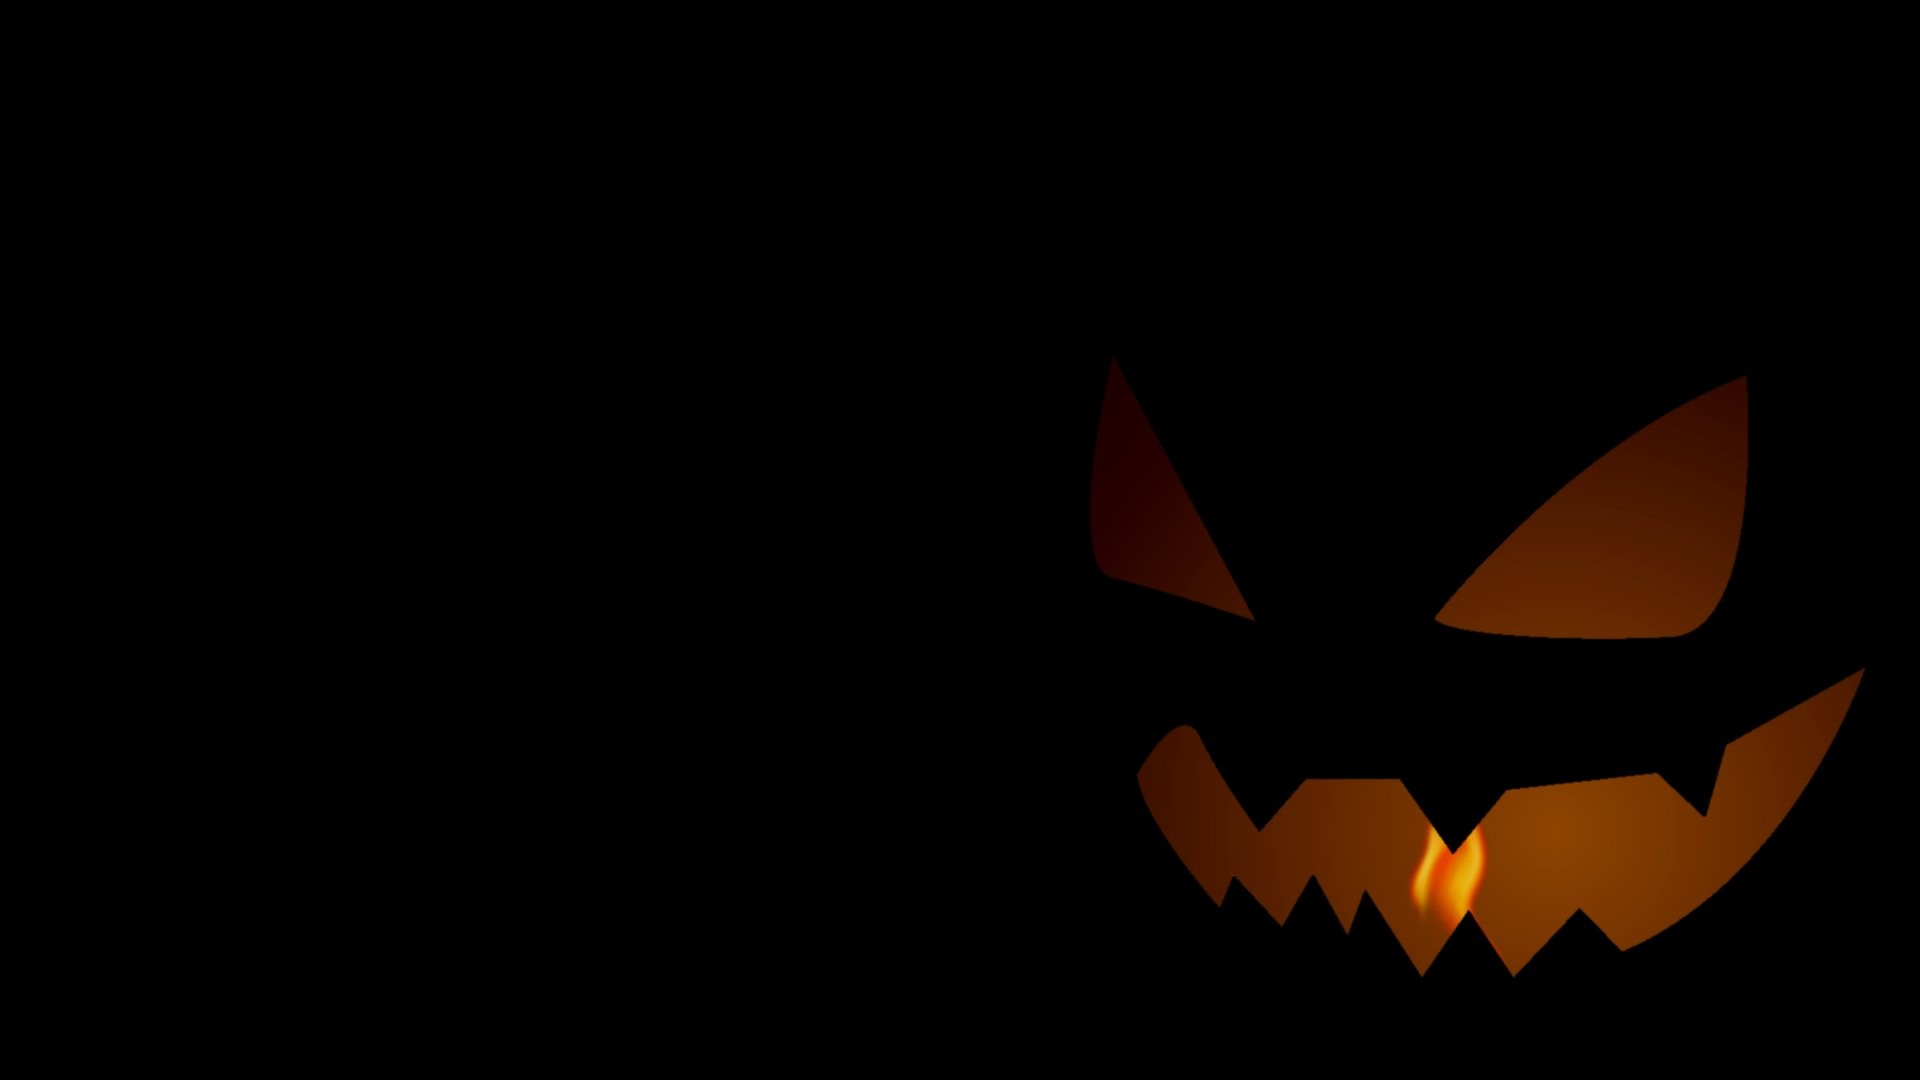 Halloween background ·① Download free full HD backgrounds for ...